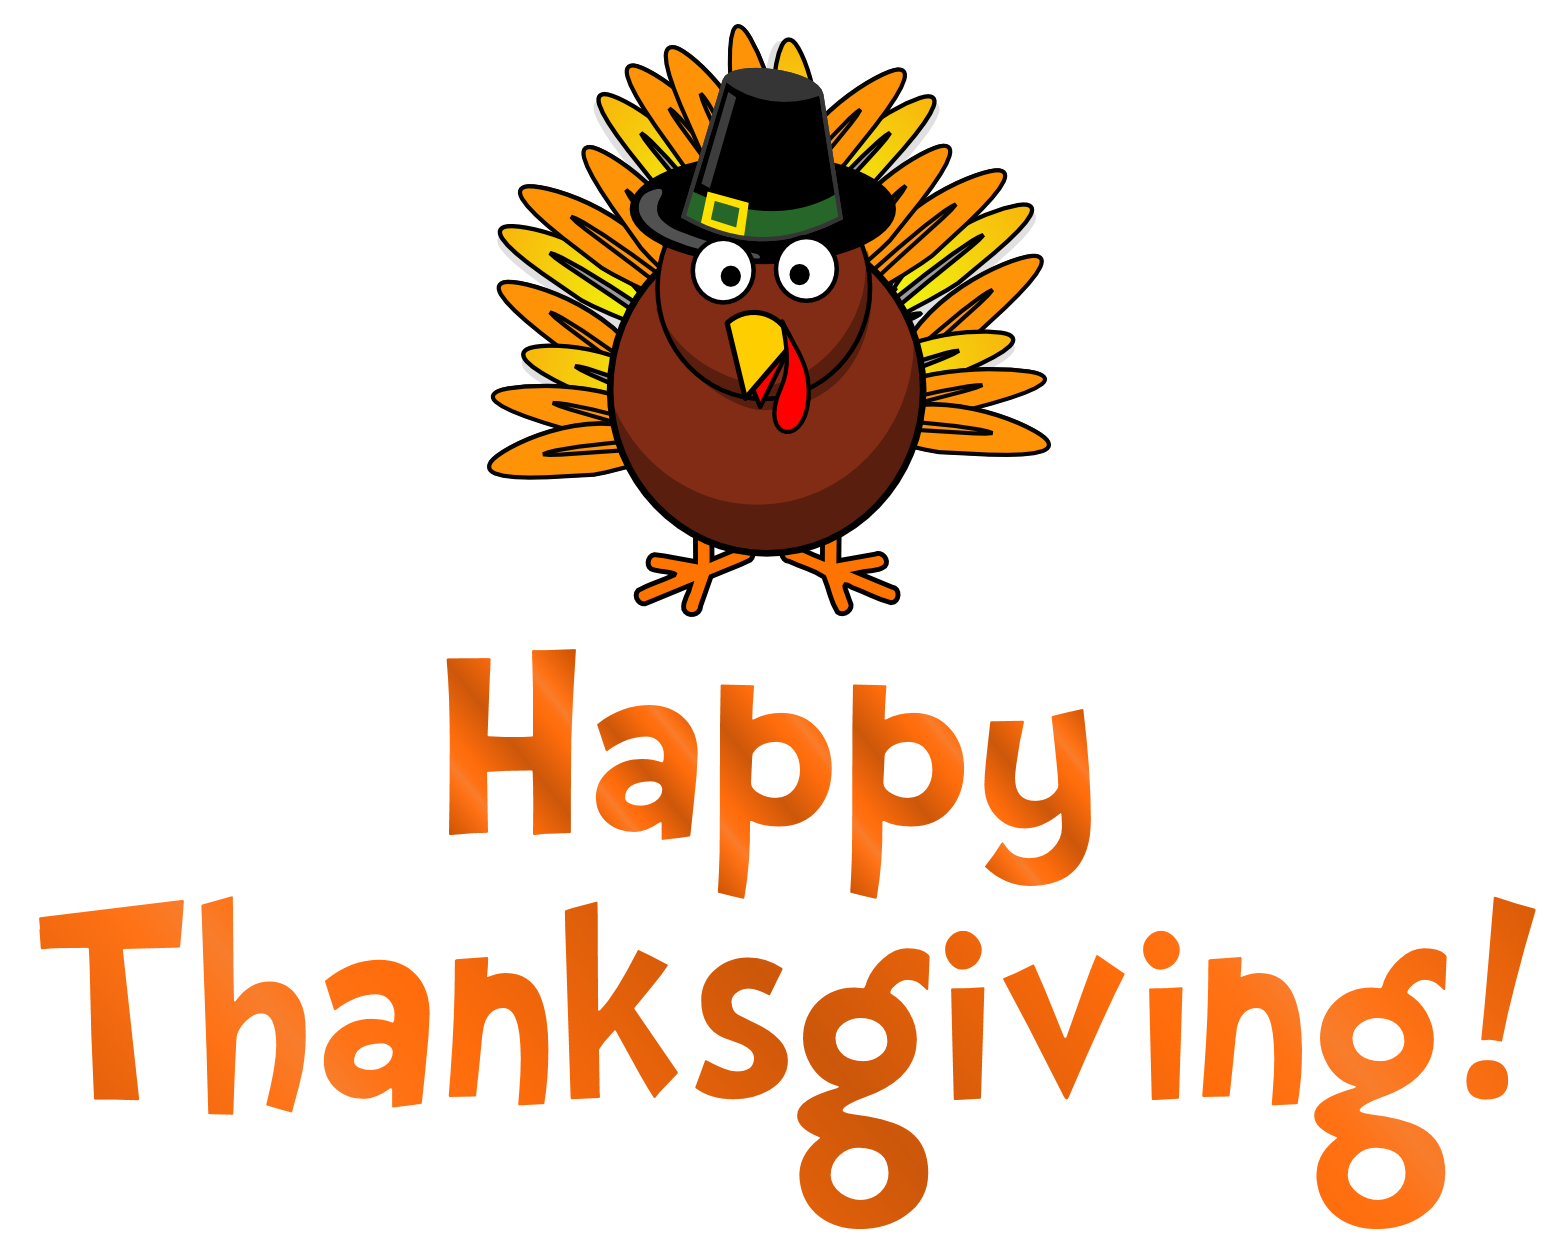 thanksgiving gifs animated